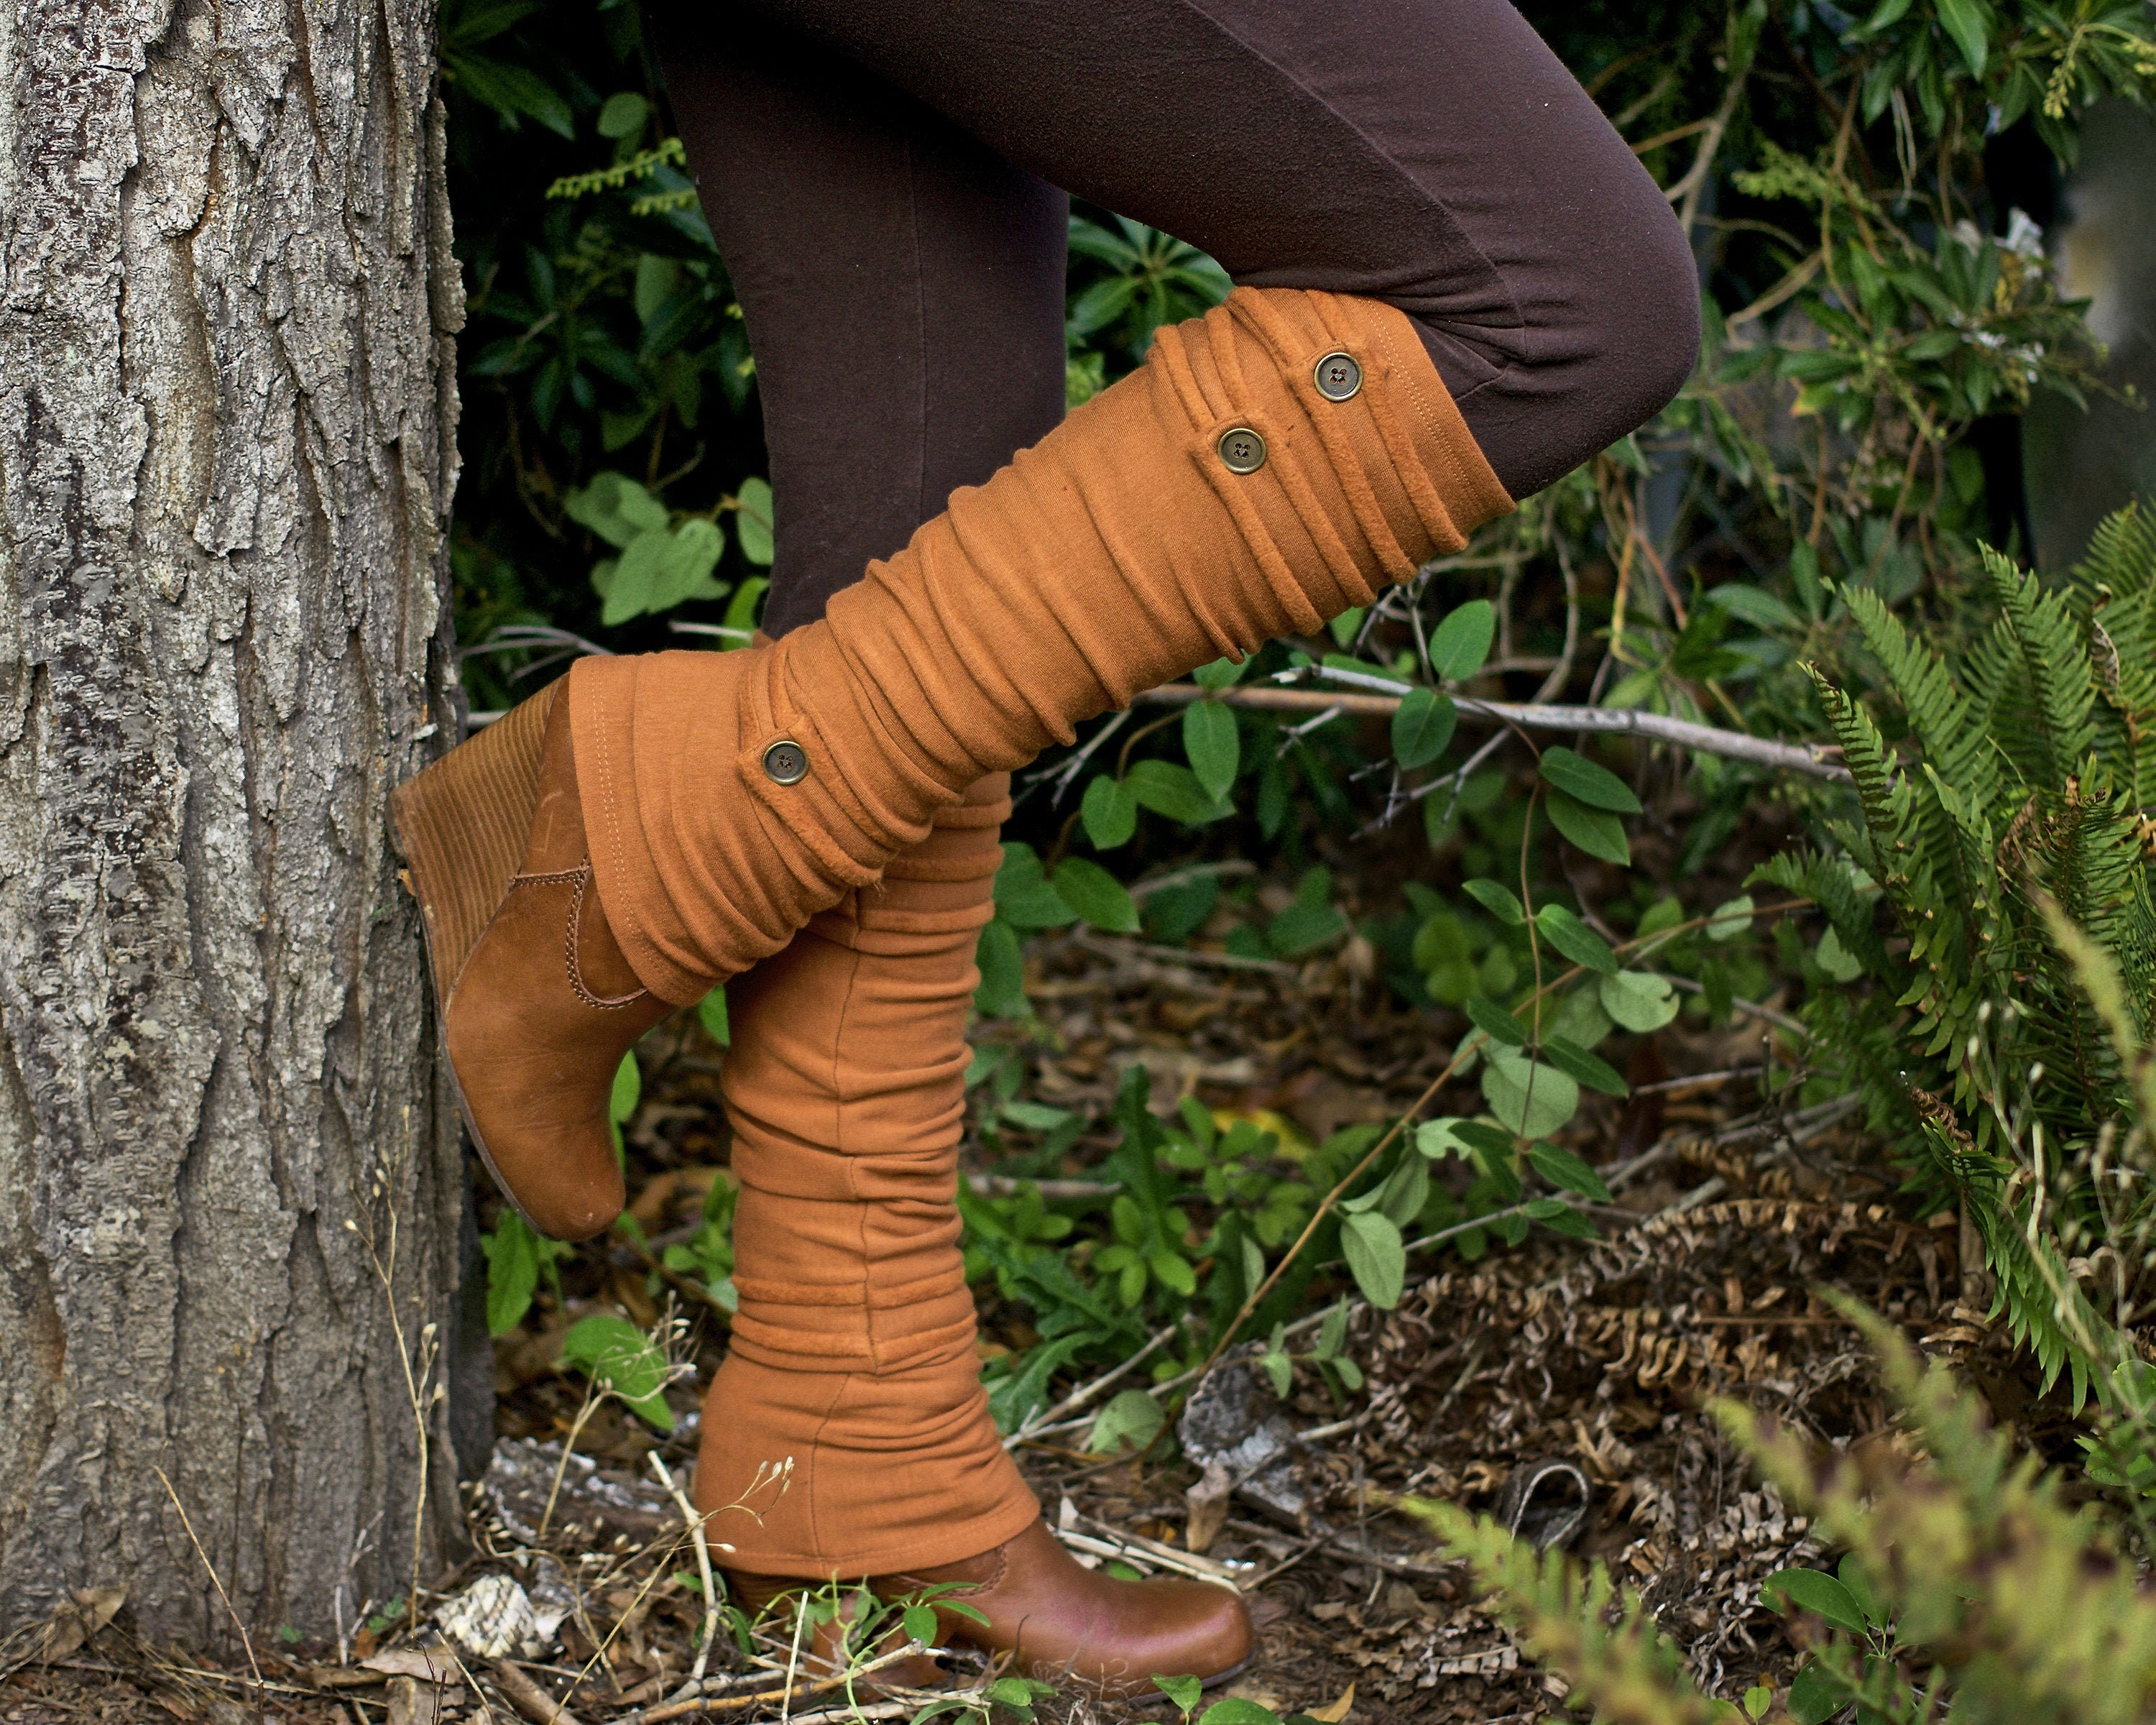 Spats, Gaiters, Puttees – Vintage Shoes Covers Womens Leg Warmers - Eco-Friendly Bamboo Fleece Made in The Usa $52.00 AT vintagedancer.com